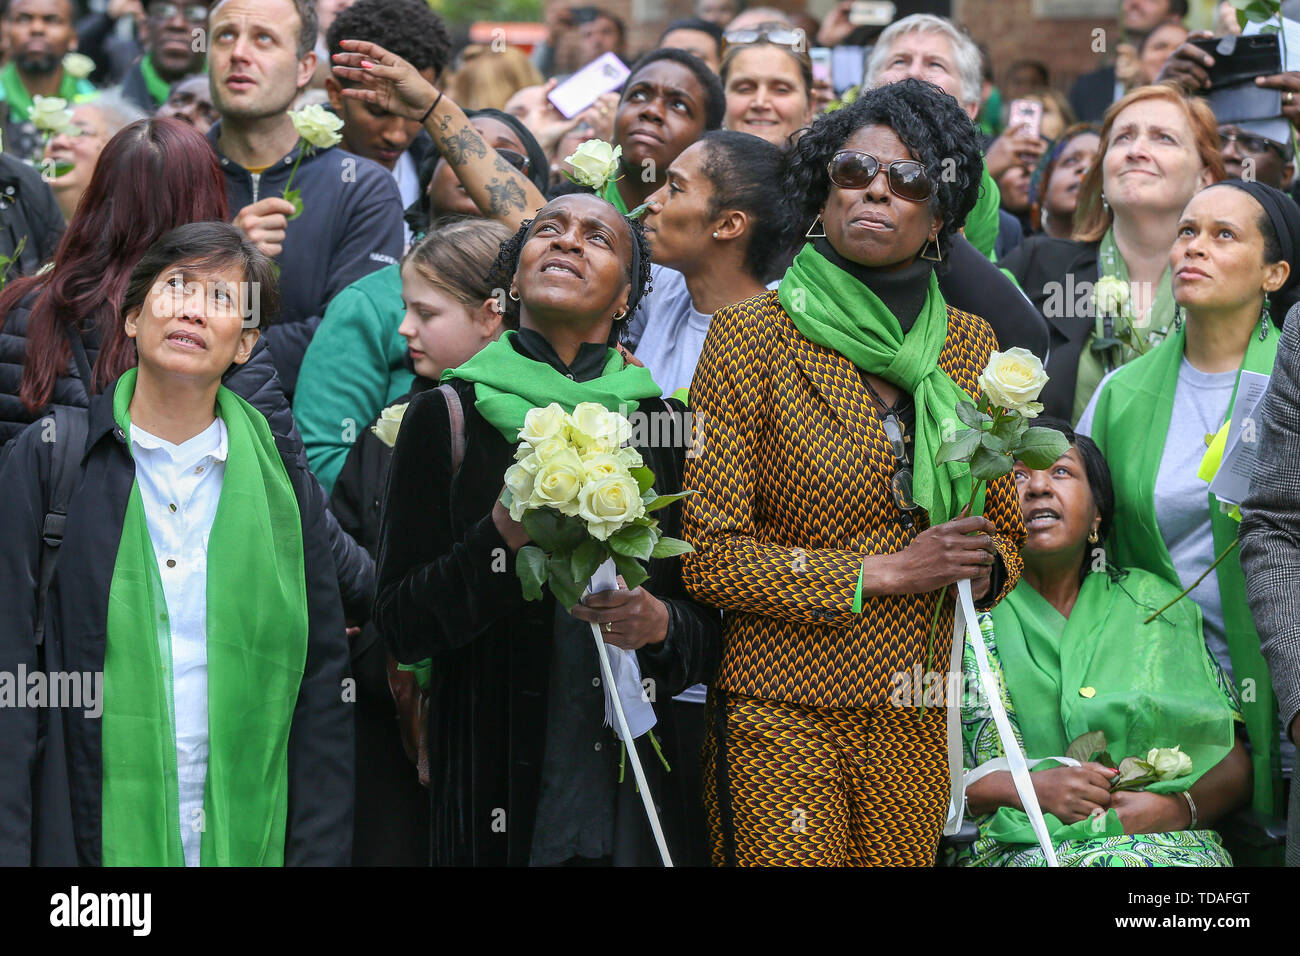 North Kensington, West London. UK 14 Jun 2019 -  Survivors, family and friends of the victims wear symbolic green scarf look at the white doves after been released to commemorate the second anniversary of the Grenfell Tower fire. On 14 June 2017, just before 1:00Êam a fire broke out in the kitchen of the fourth floor flat at the 24-storey residential tower block in North Kensington, West London, which took the lives of 72 people. More than 70 others were injured and 223 people escaped.  Credit: Dinendra Haria/Alamy Live News - Stock Image